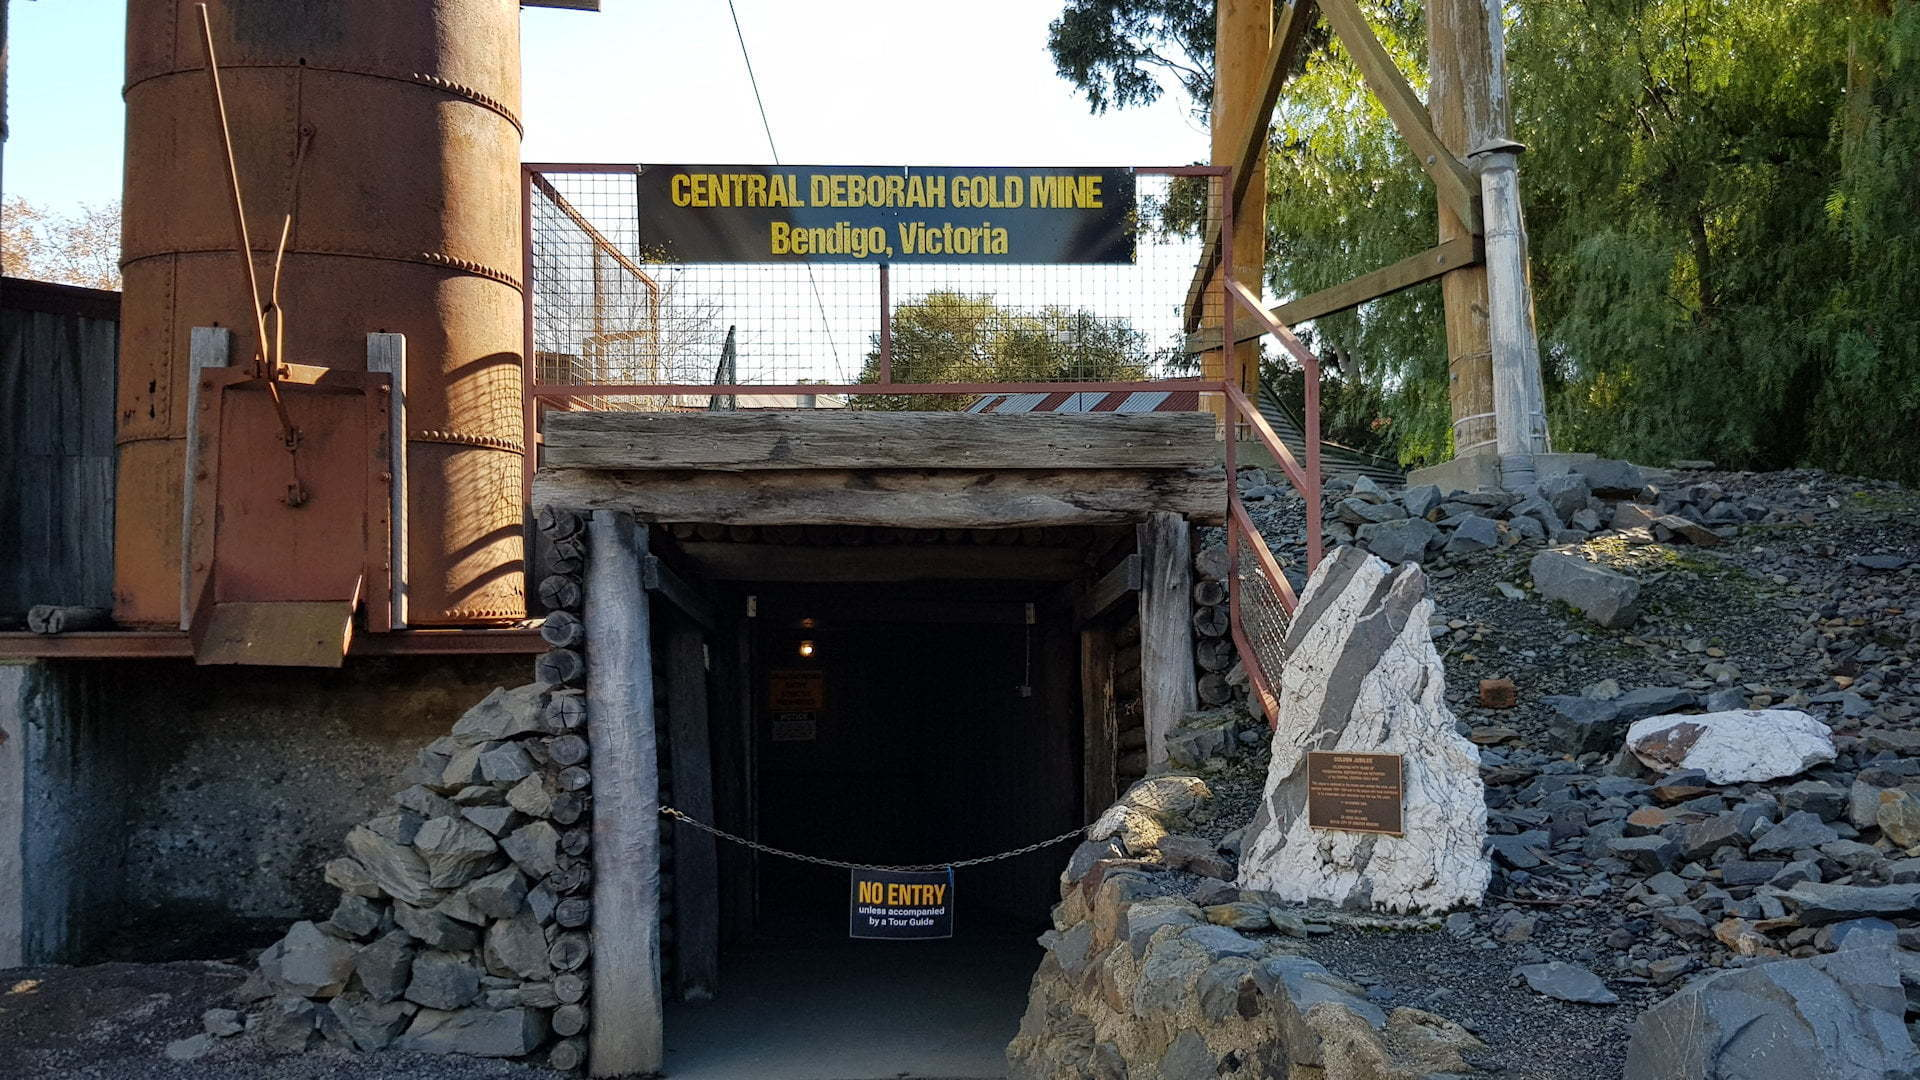 Central Deborah Gold Mine museum in Bendigo